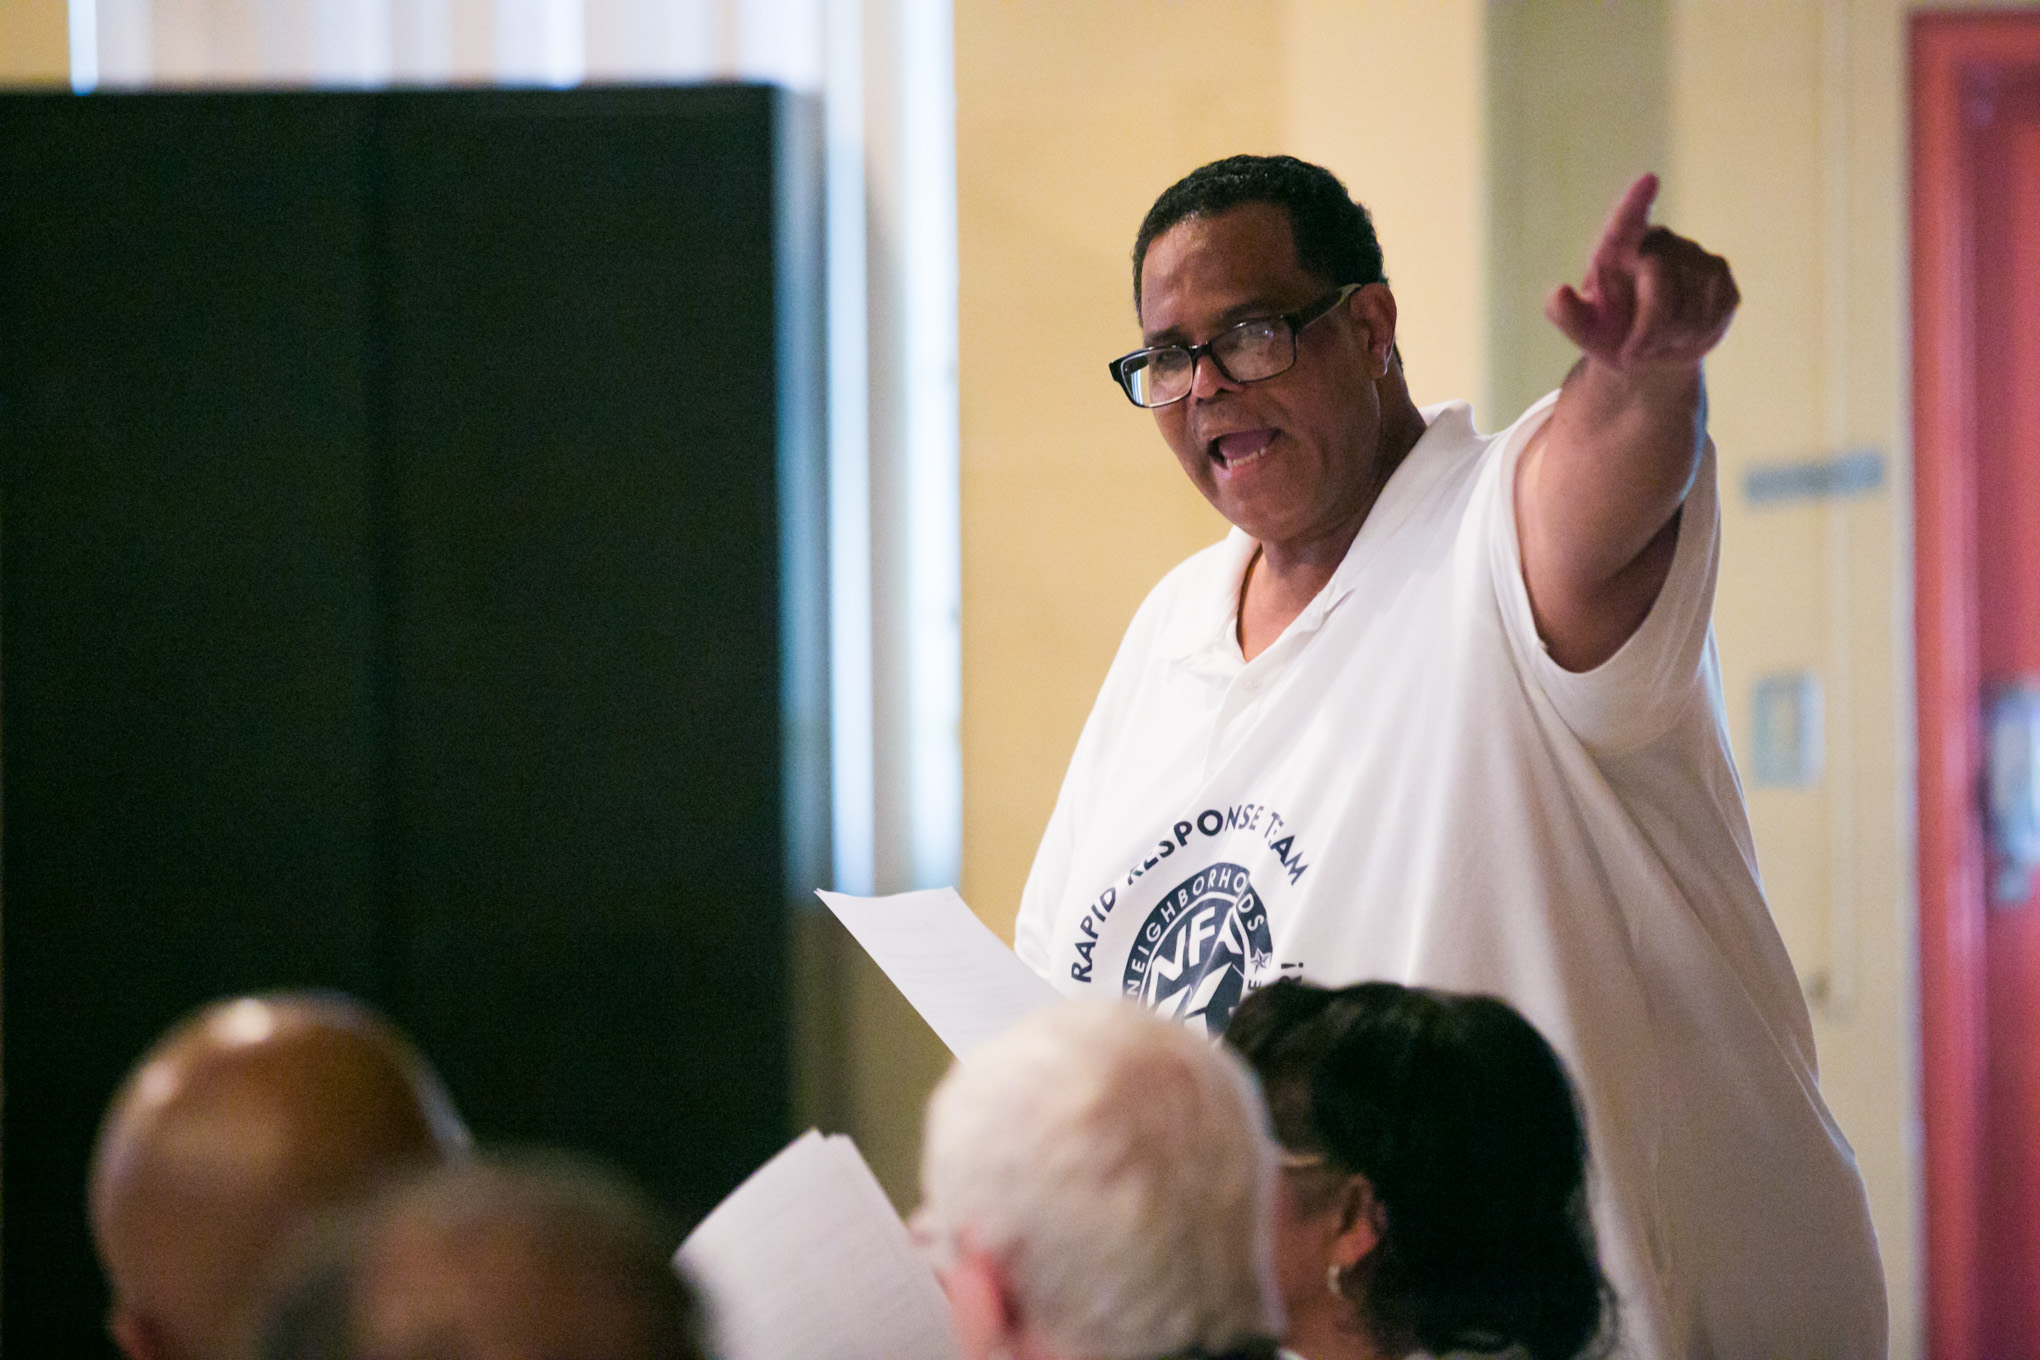 Neighborhoods First Alliance President Tommy TC Calvert speaks about the need for a $777,000.00 crime prevention budget. Photo by Kathryn Boyd-Batstone.